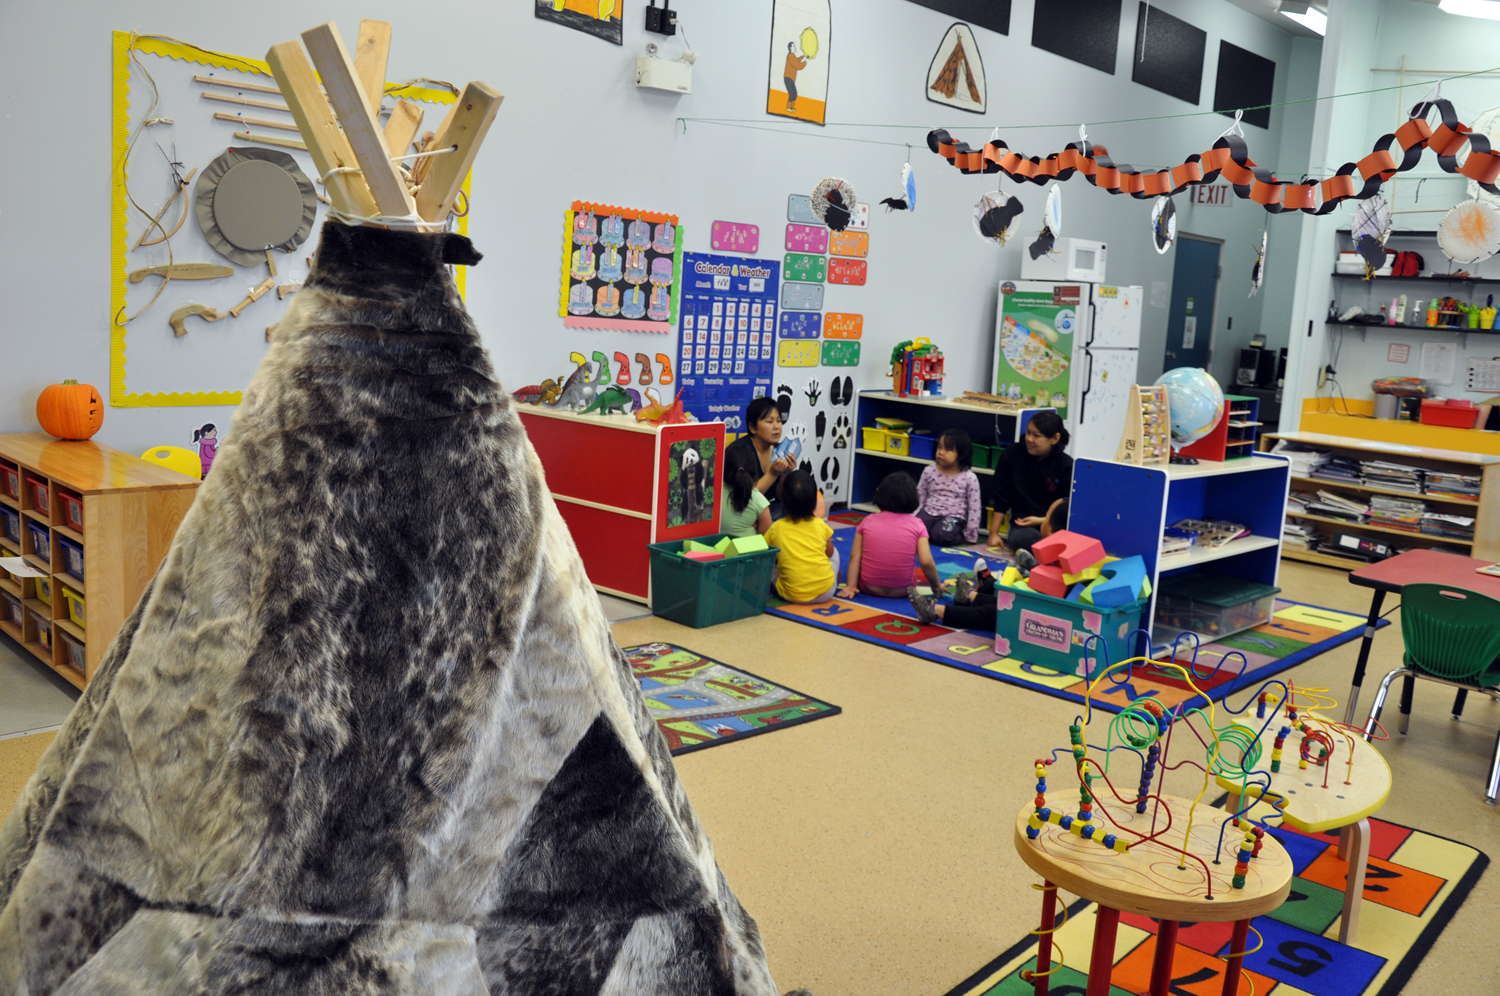 This federally-funded Aboriginal Head Start program in Arviat launched in 1995, the same year the First Nations and Inuit Child Care Initiative launched, creating hundreds of childcare spaces for Aboriginal children across the country. (FILE PHOTO)